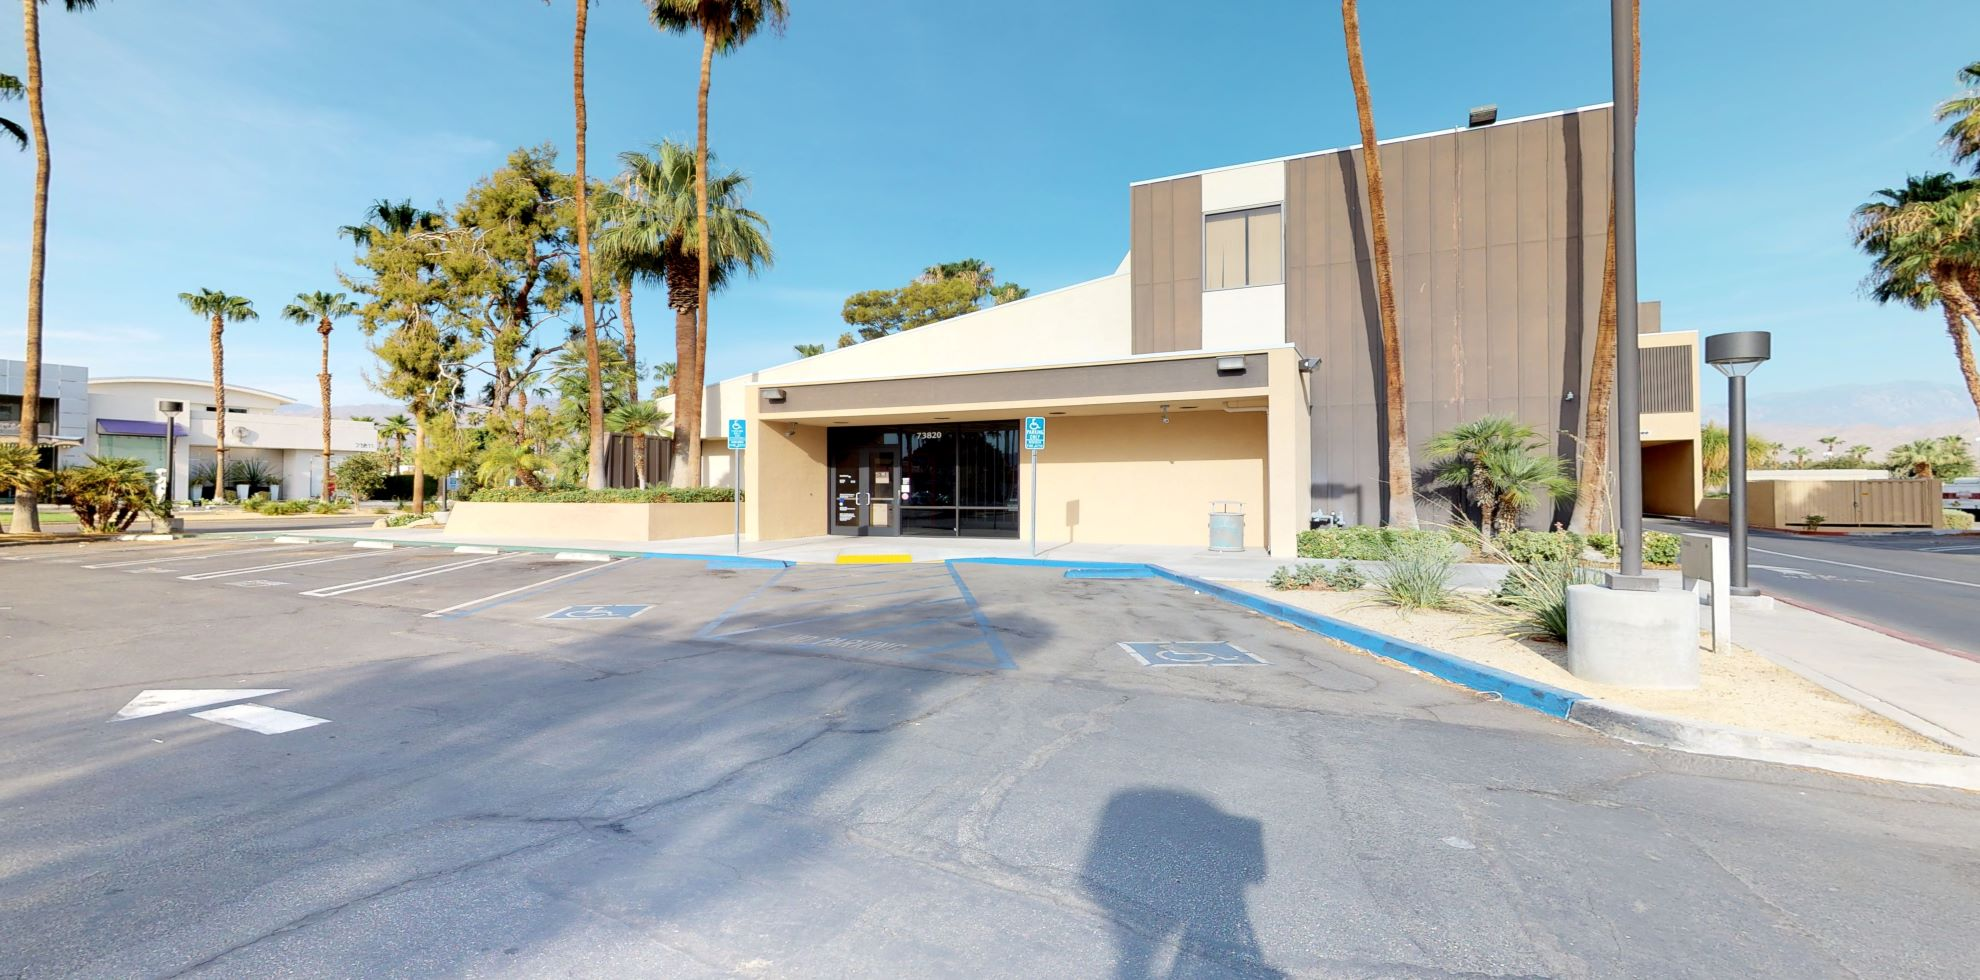 Bank of America financial center with drive-thru ATM | 73820 El Paseo, Palm Desert, CA 92260